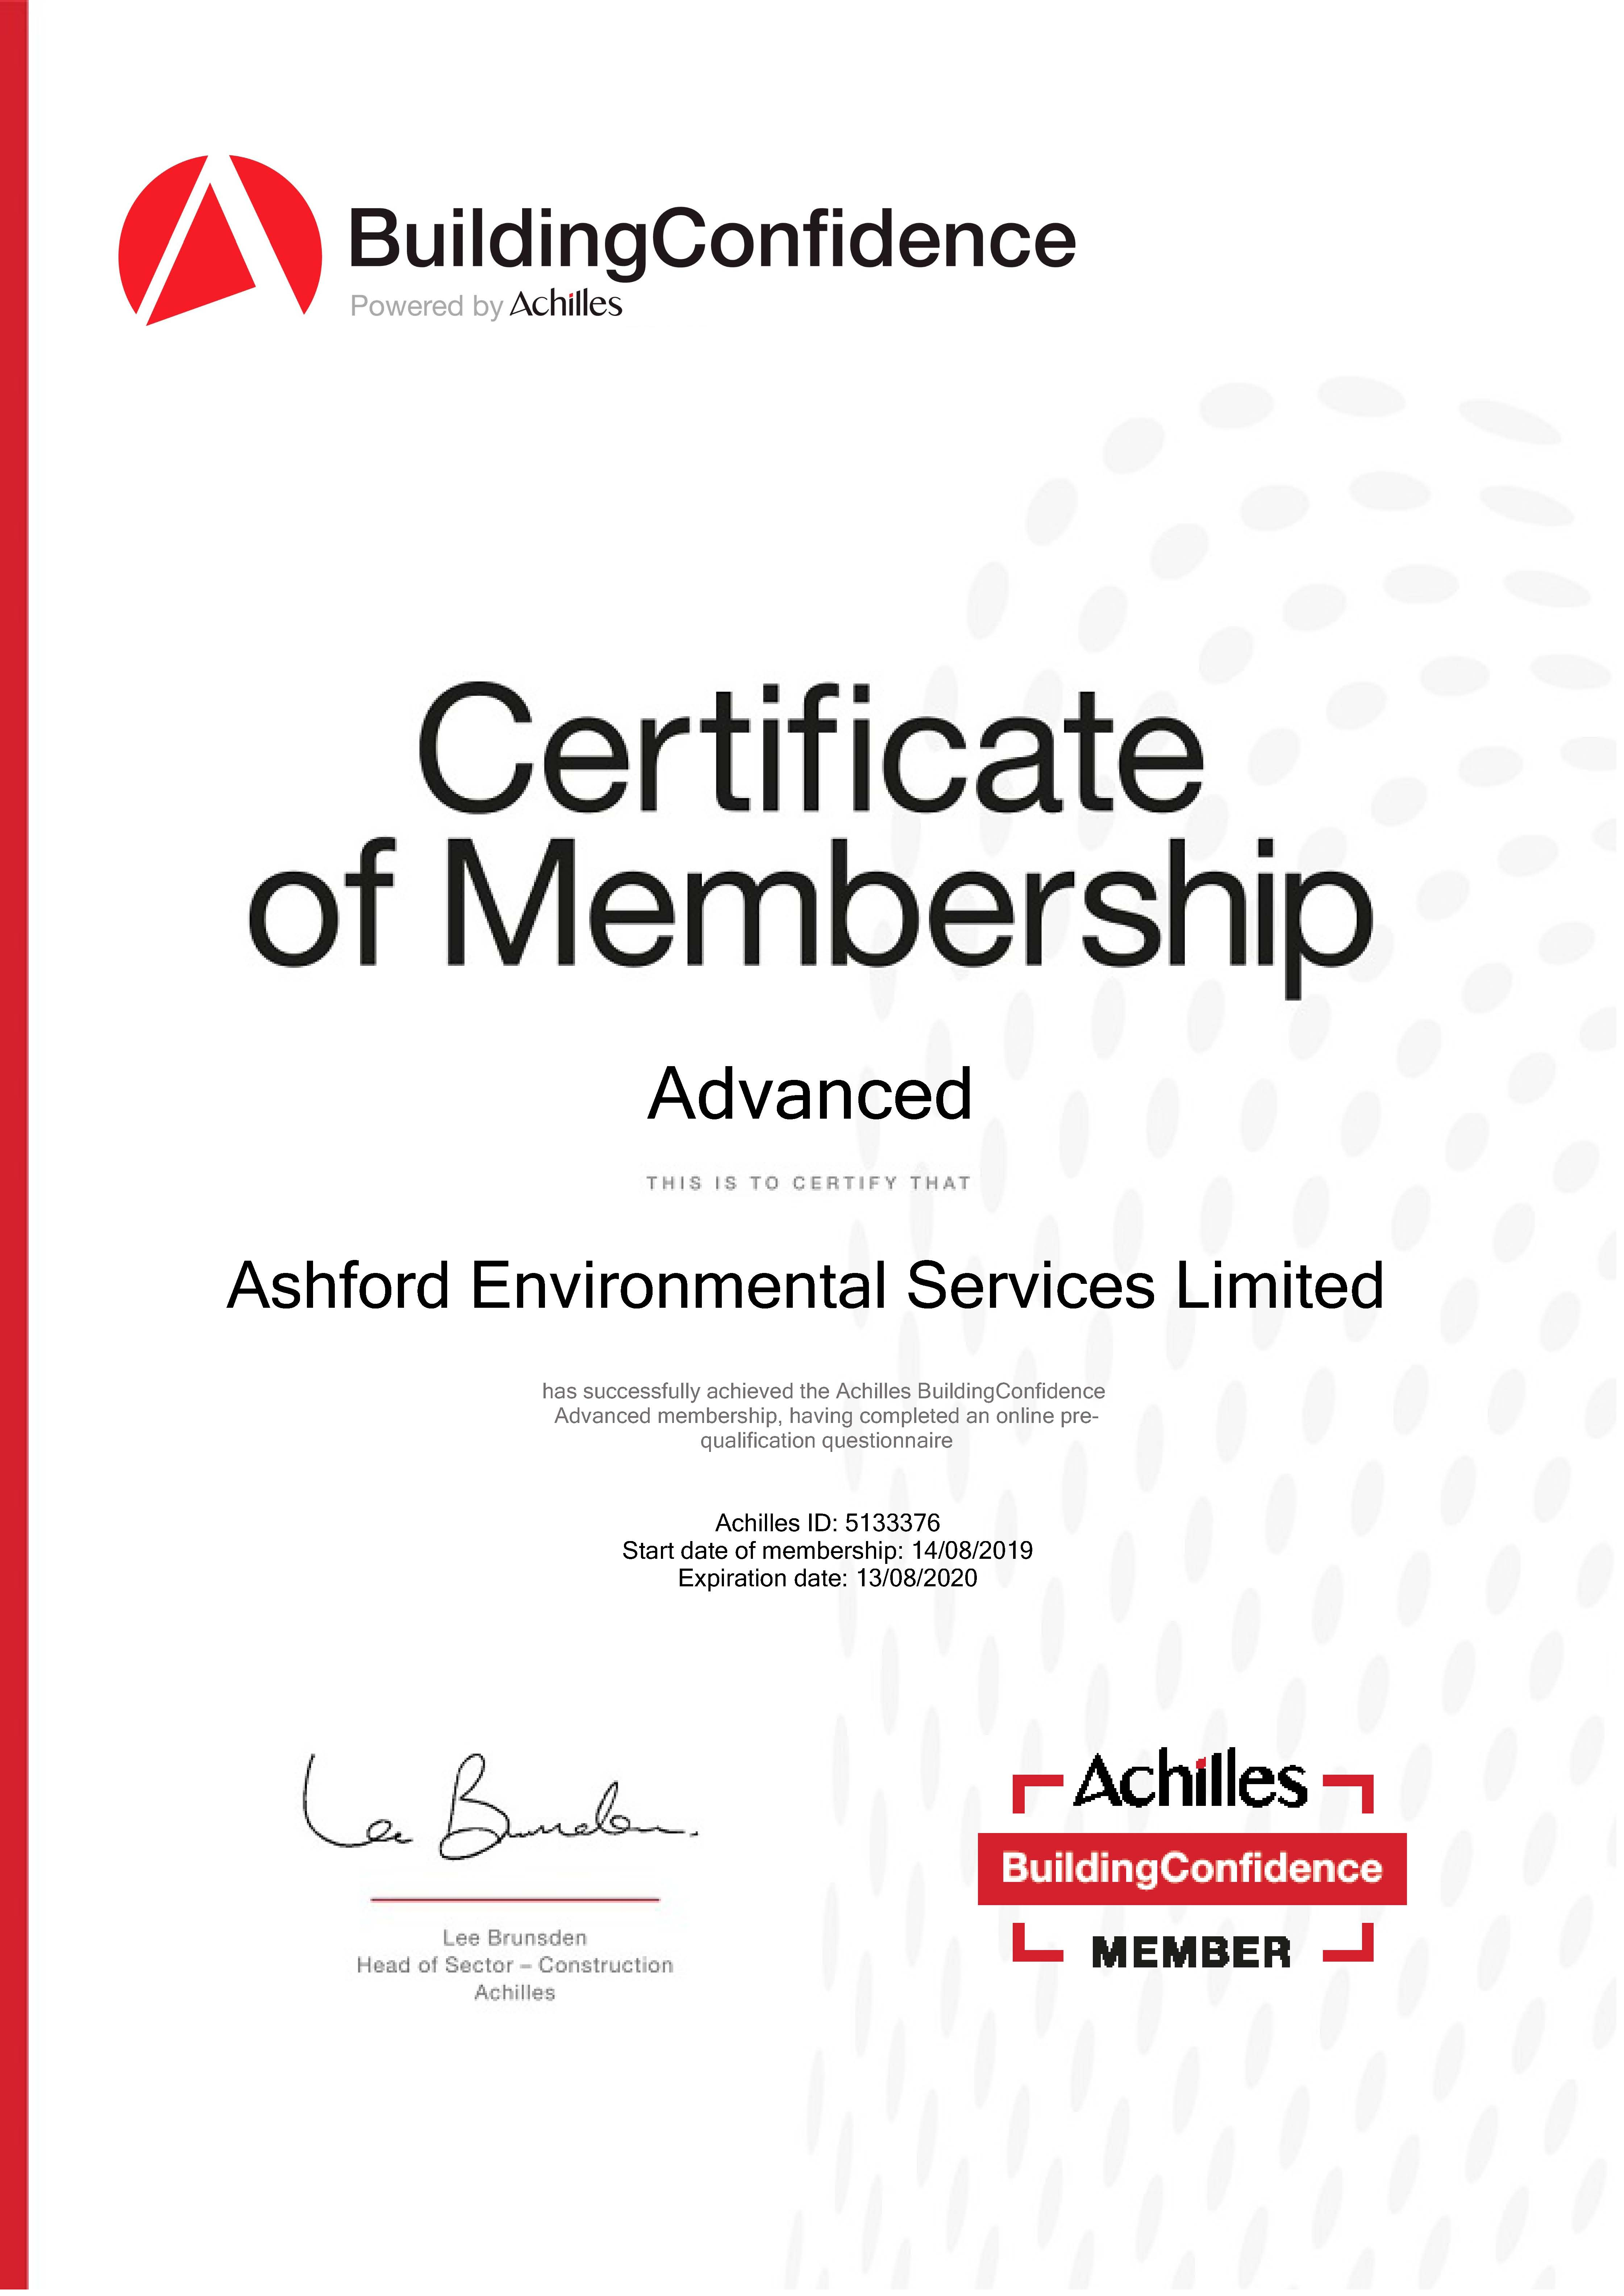 Certificate of Membership Building Confidence Advanced Achilles ID 5133376